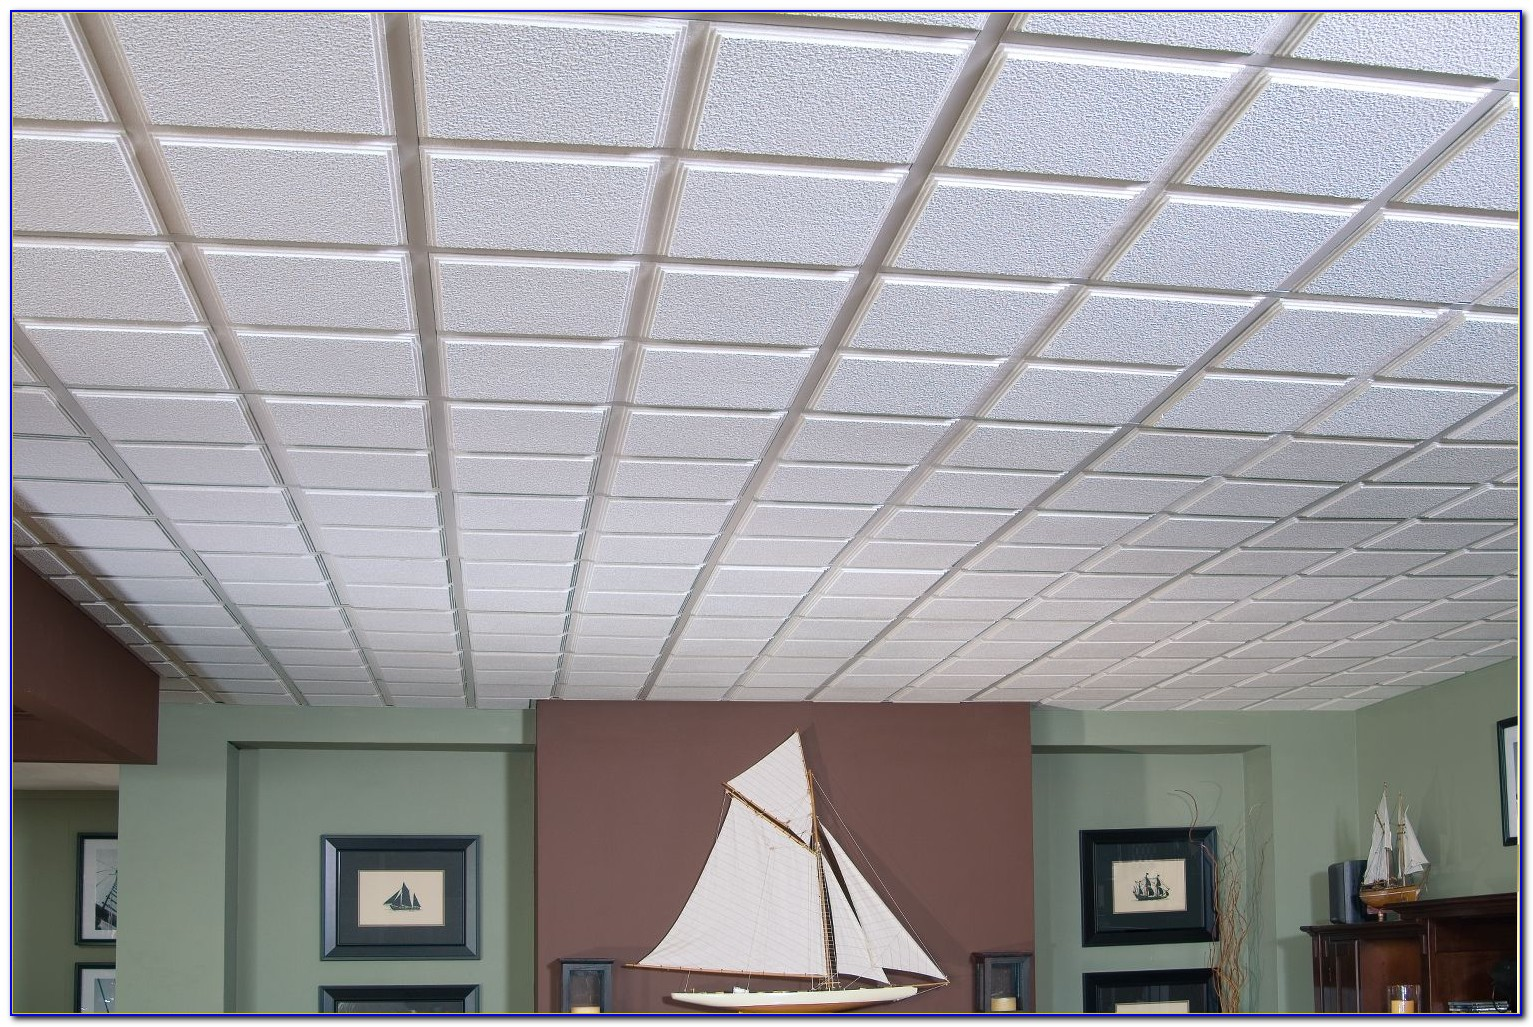 Cool 12 By 12 Ceiling Tiles Huge 2 By 4 Ceiling Tiles Round 24X24 Marble Floor Tiles 2X4 Drop Ceiling Tiles Home Depot Old 2X4 Tin Ceiling Tiles Black4X4 Ceramic Tile 2X2 Acoustical Ceiling Tiles   Columbialabels